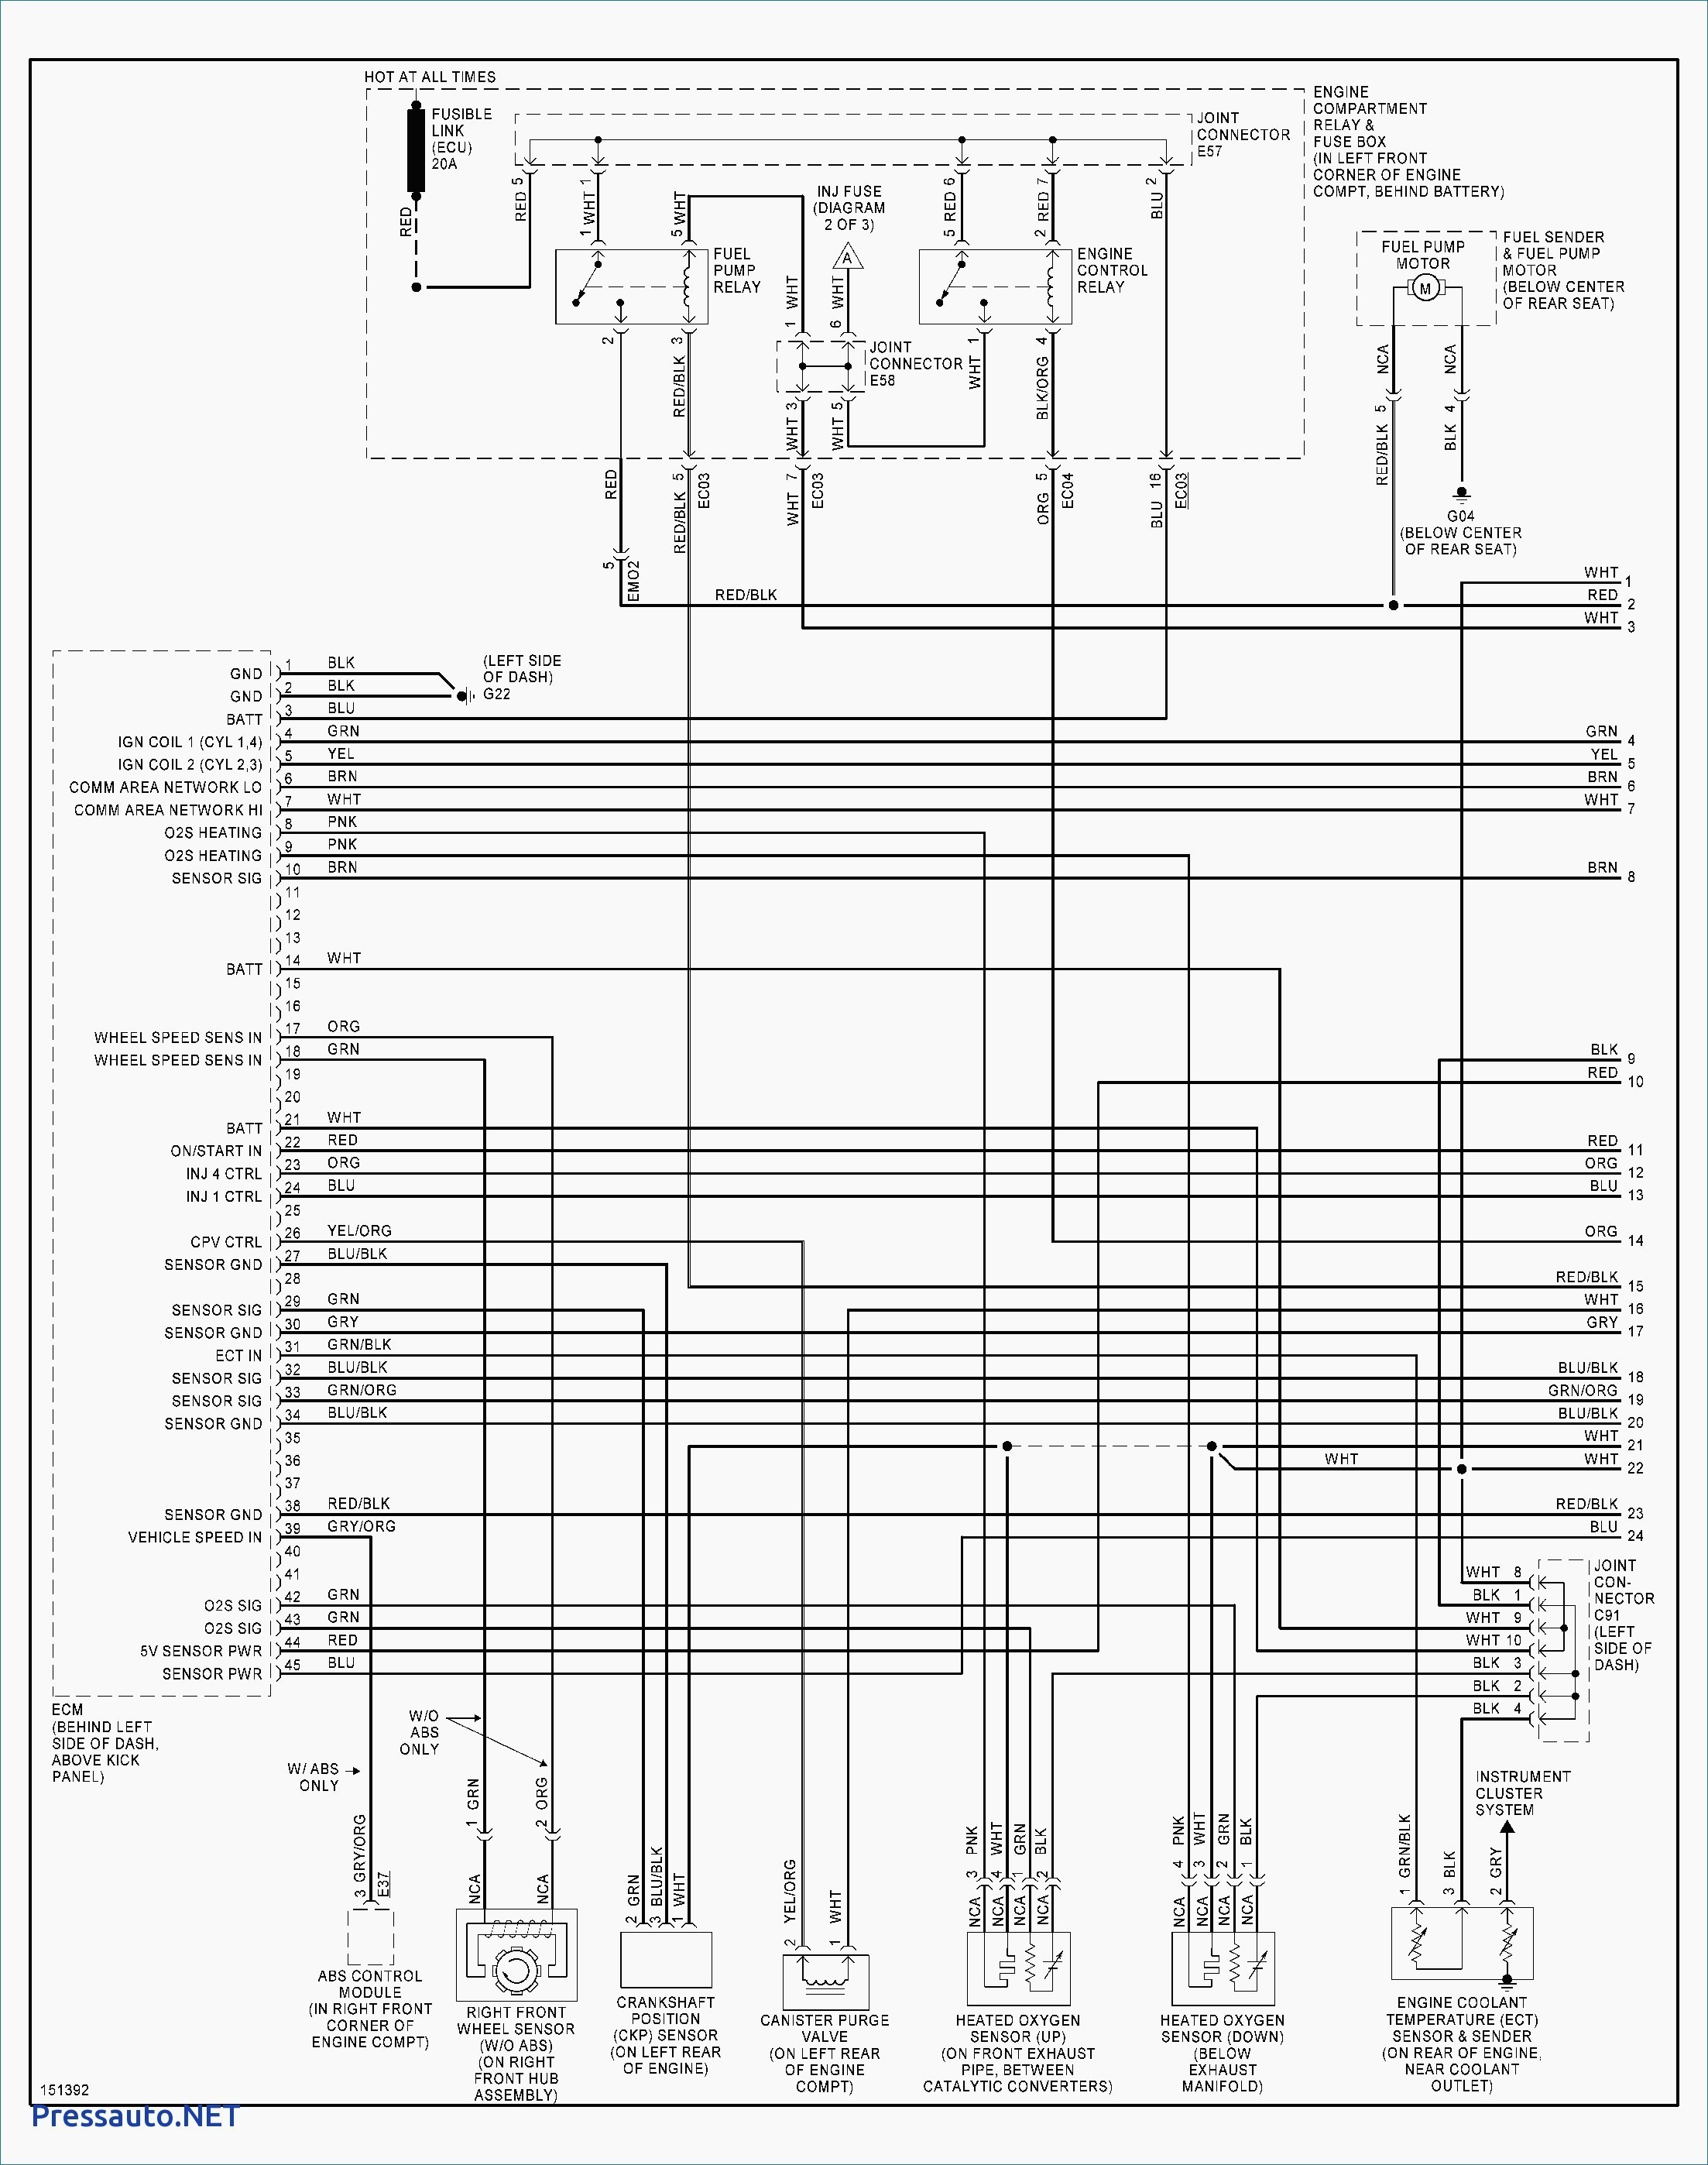 2004 Hyundai Accent Wiring Diagrams - Schematics Wiring Diagrams •